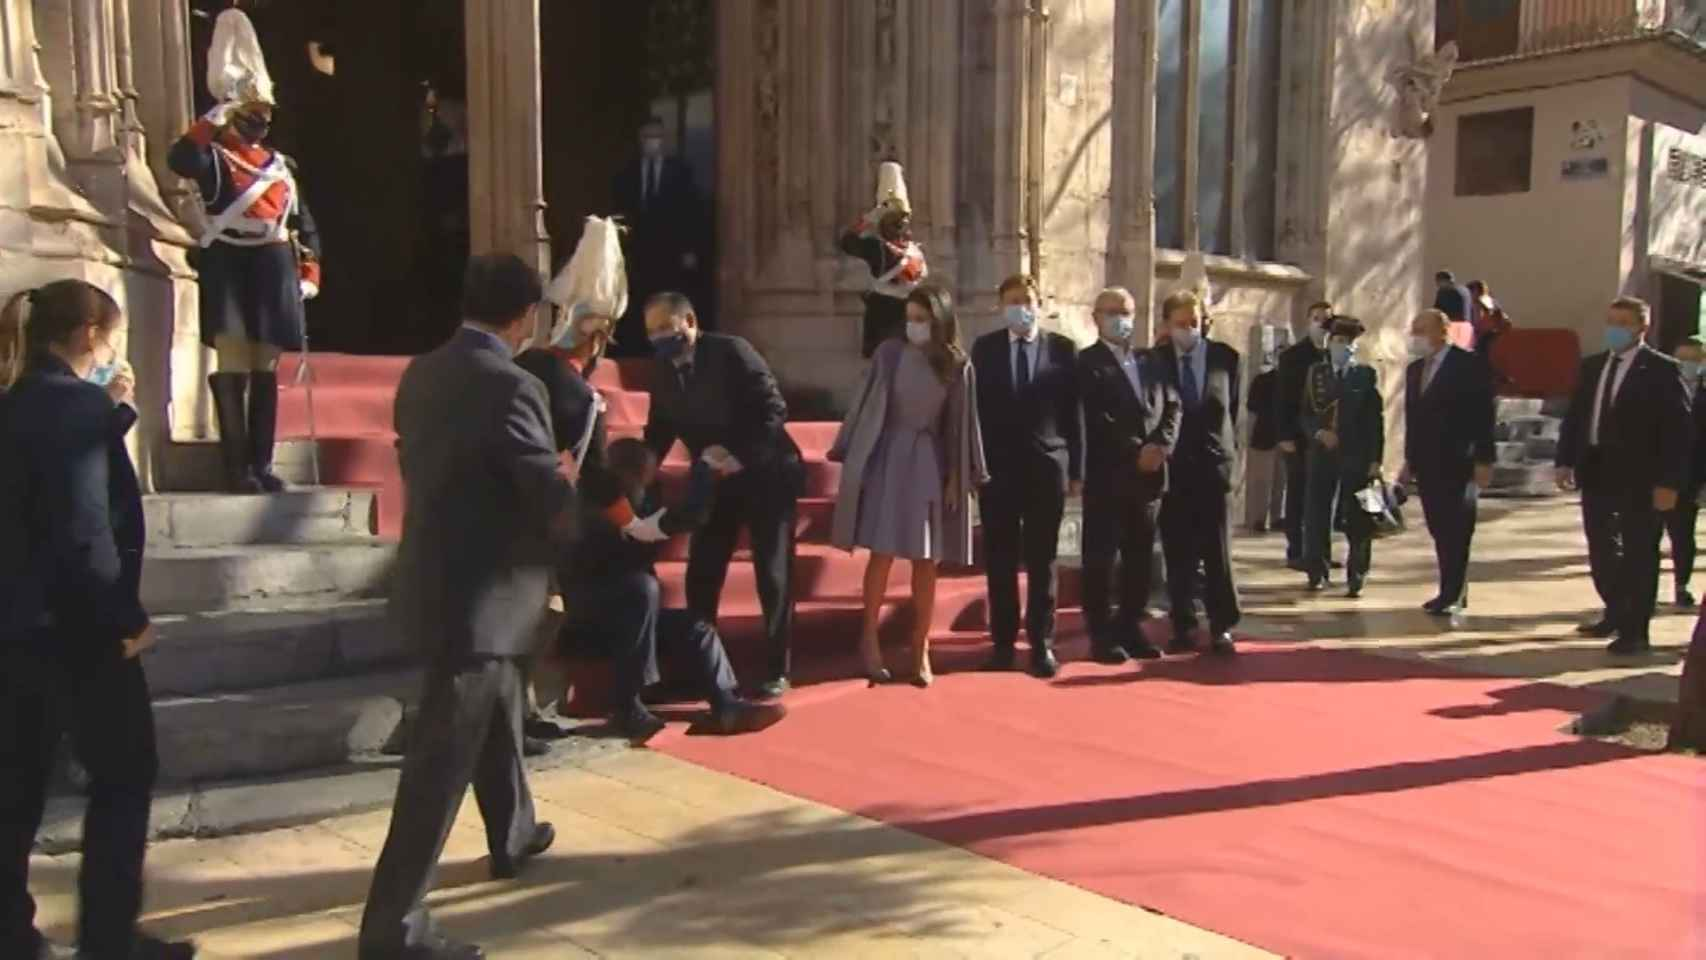 La Reina asiste al acto de entrega de los Premios Jaume I